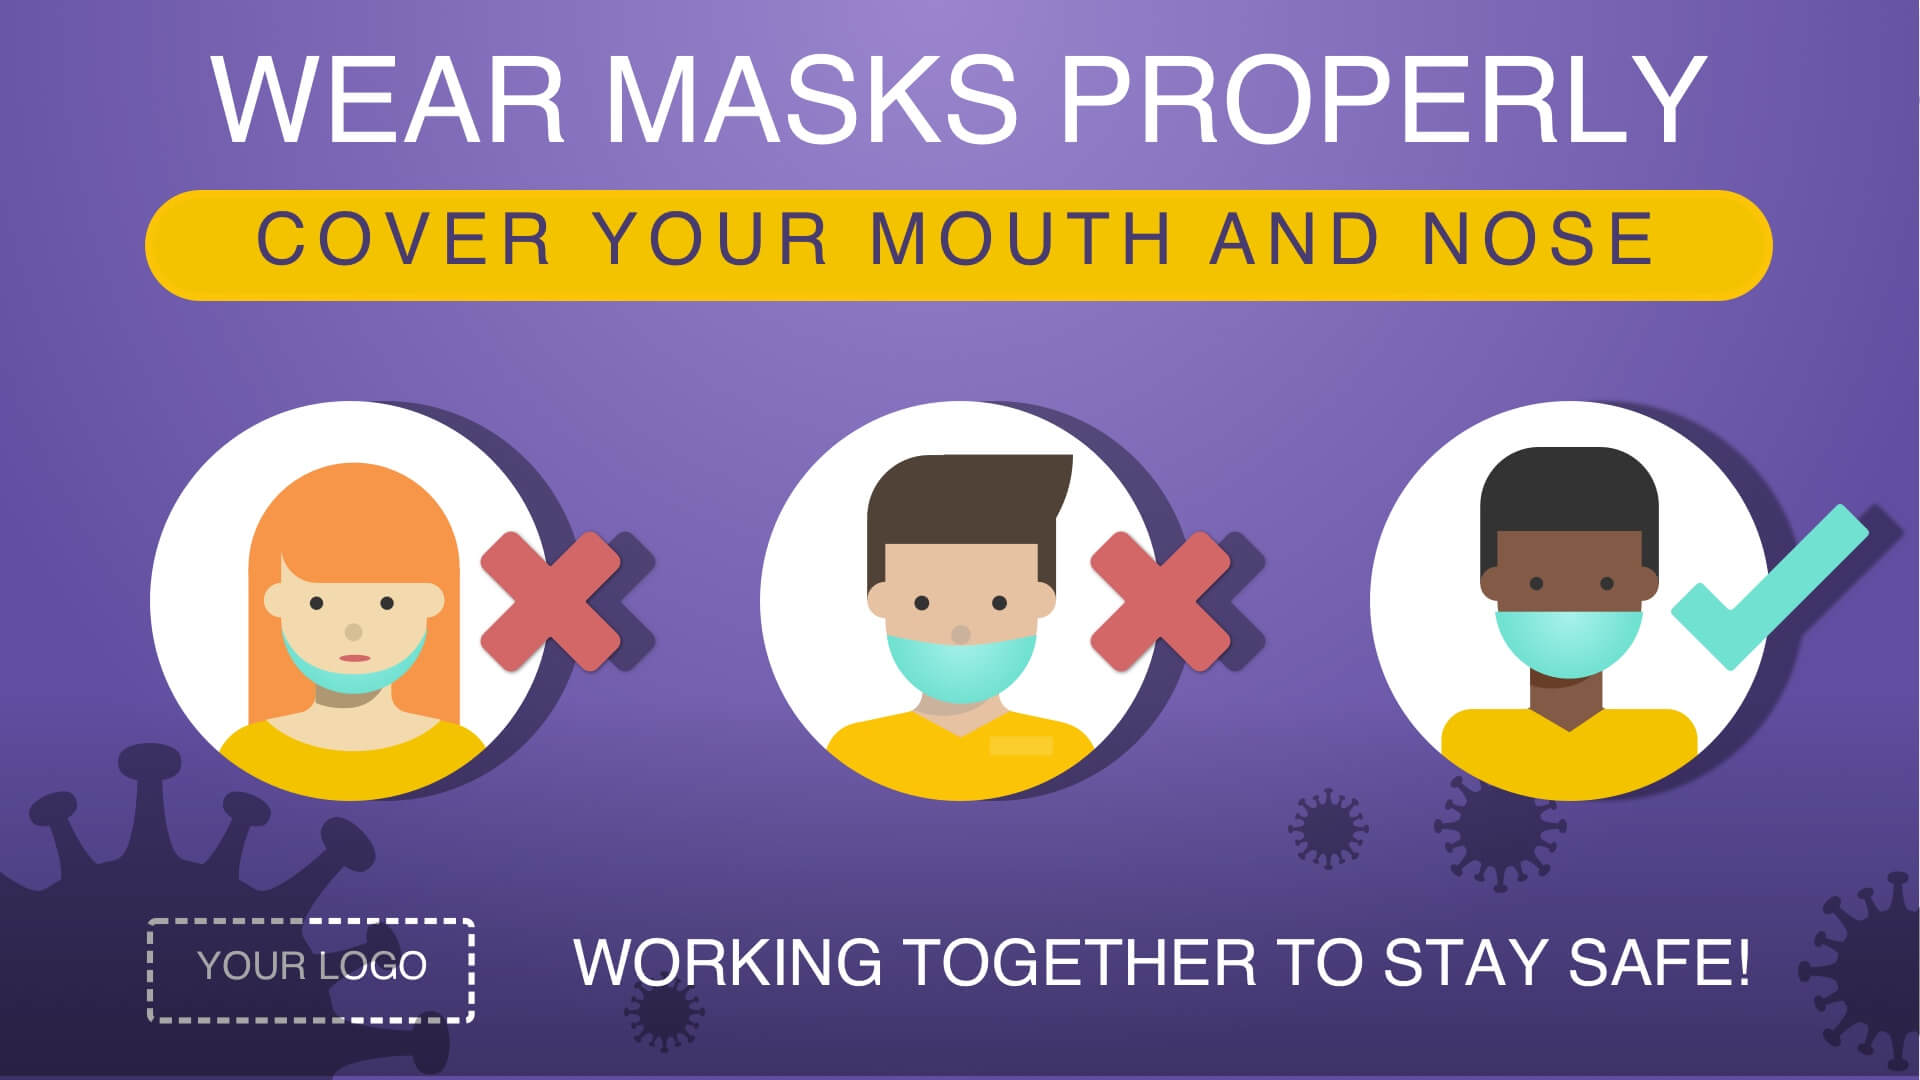 template-digitial-signage-sign-campaign-proper-mask-wear